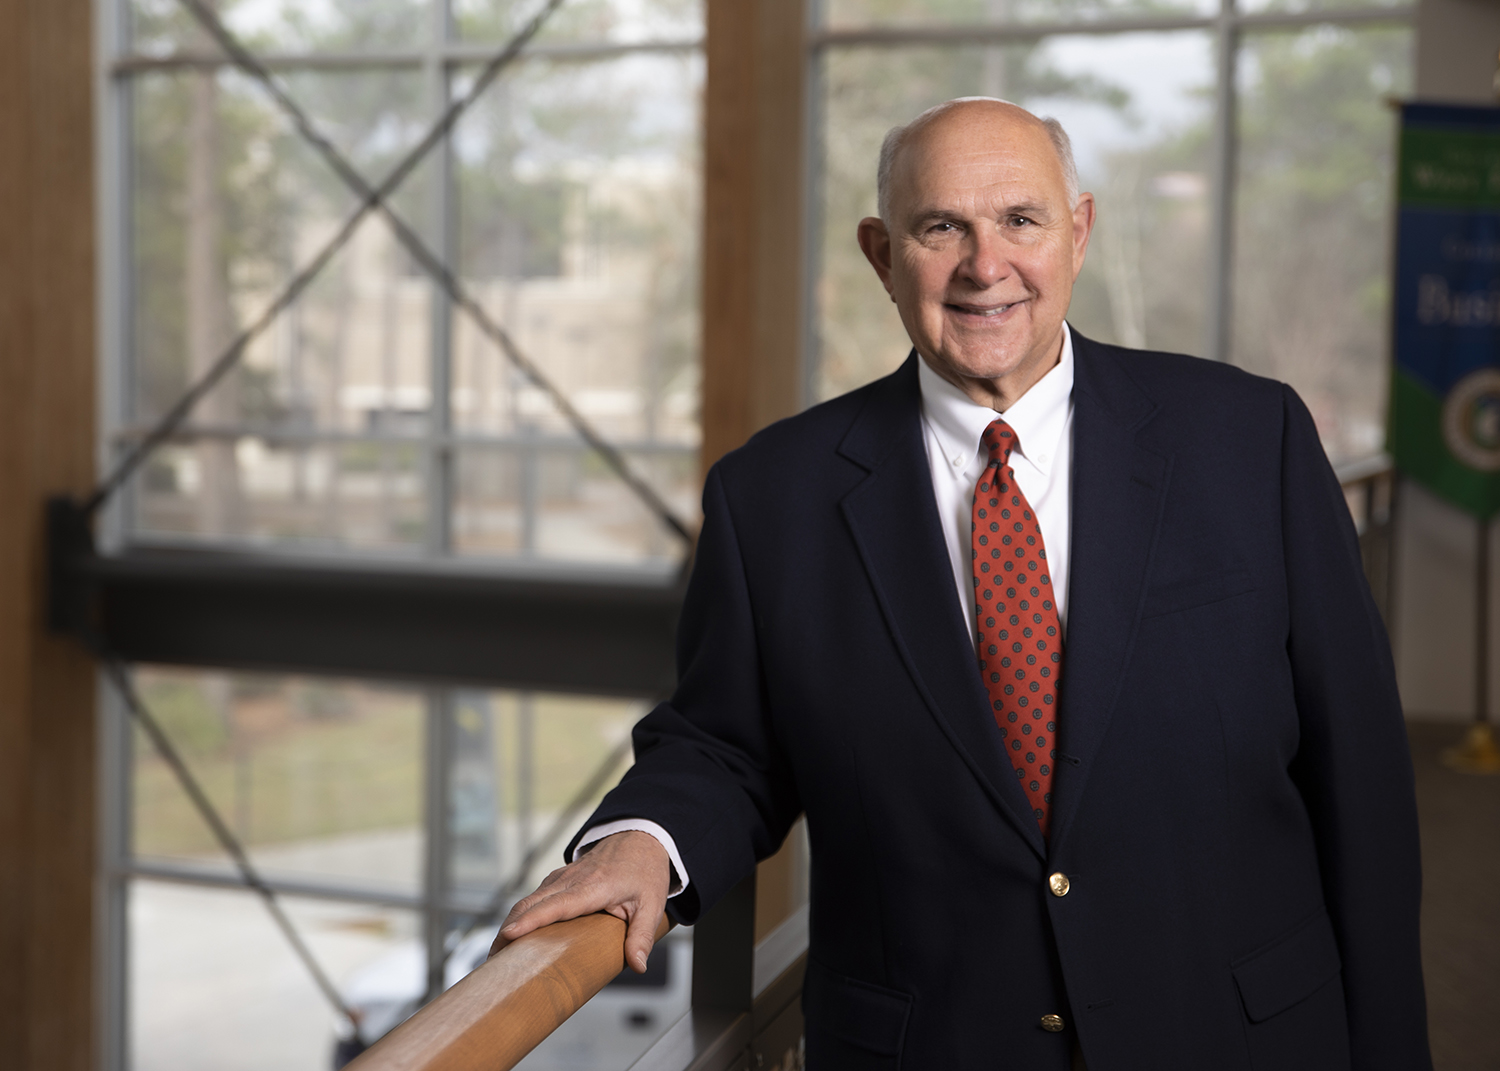 Richard Fountain, dean of the UWF College of Business